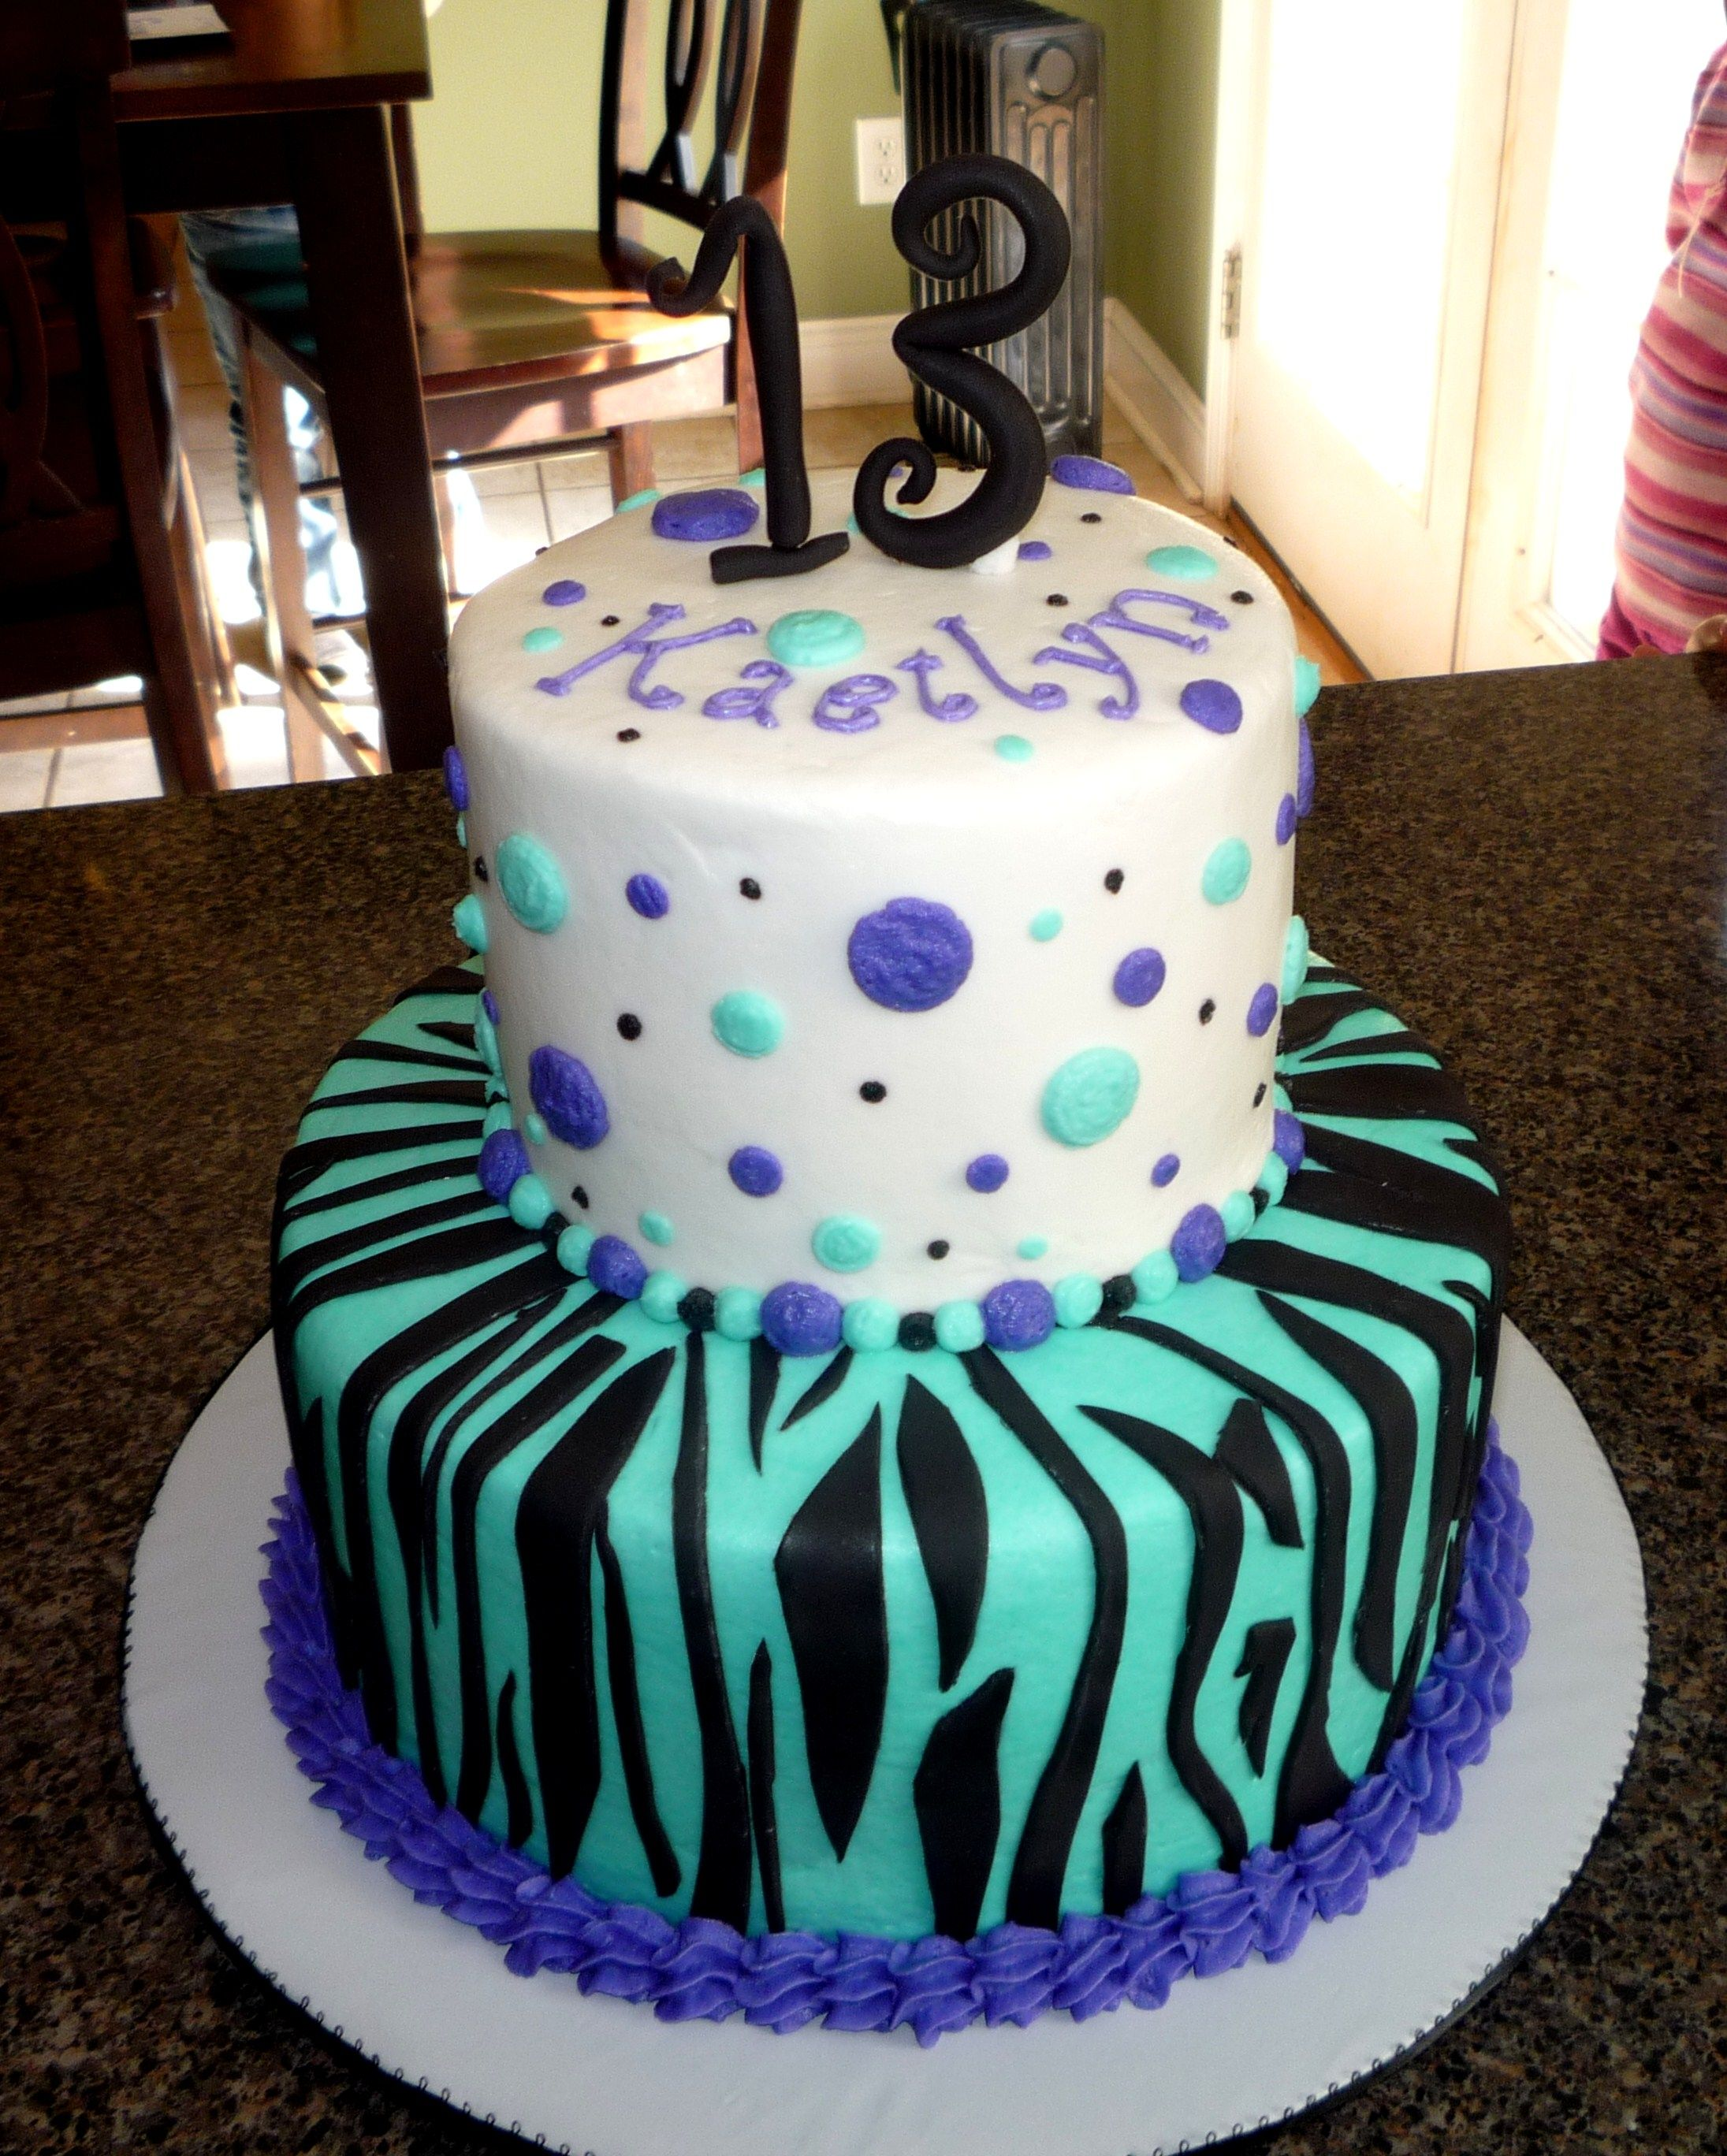 2 Tier Cake In Teal & Blue